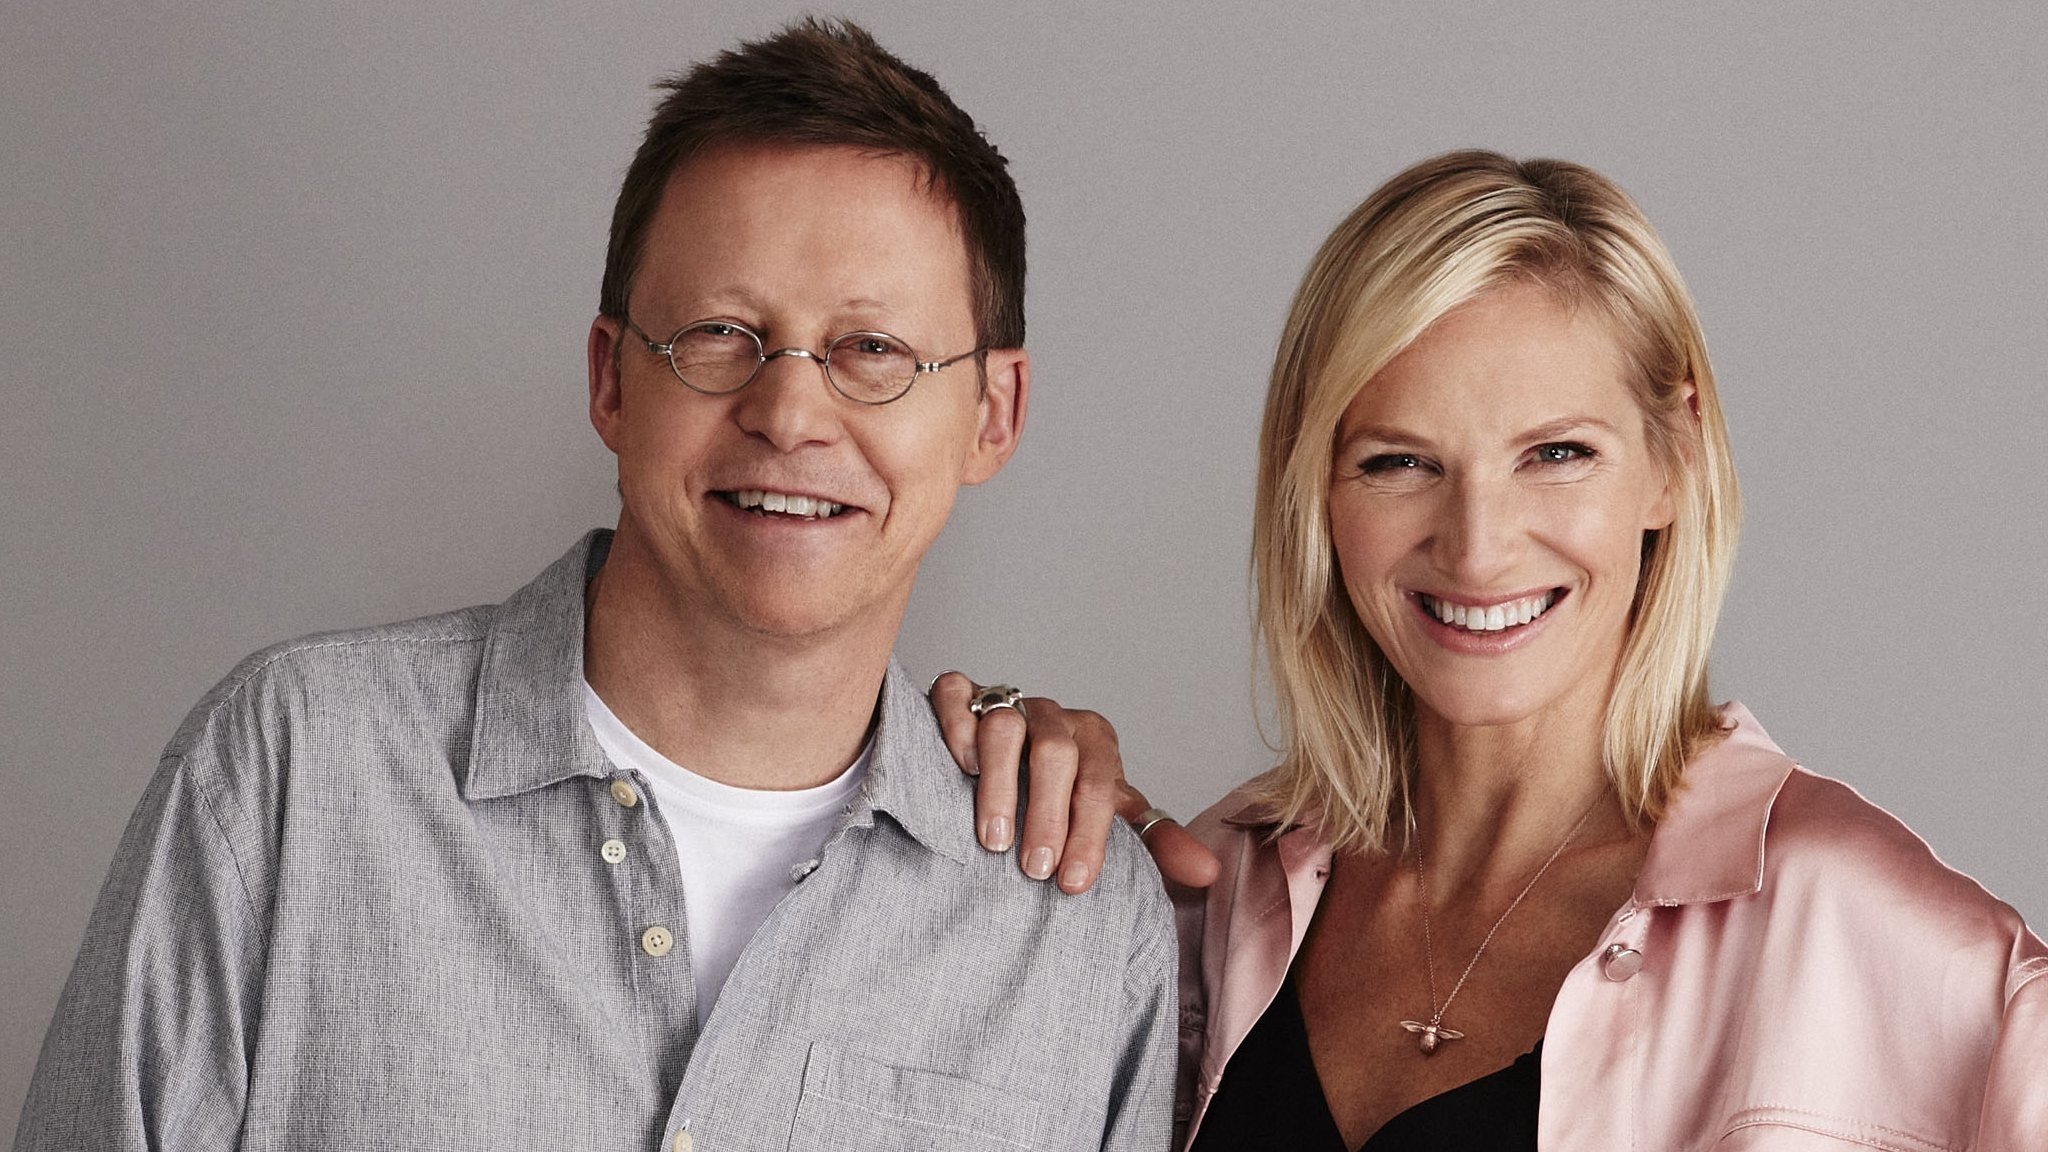 Mayo and Whiley: How long does a radio show take to settle in?